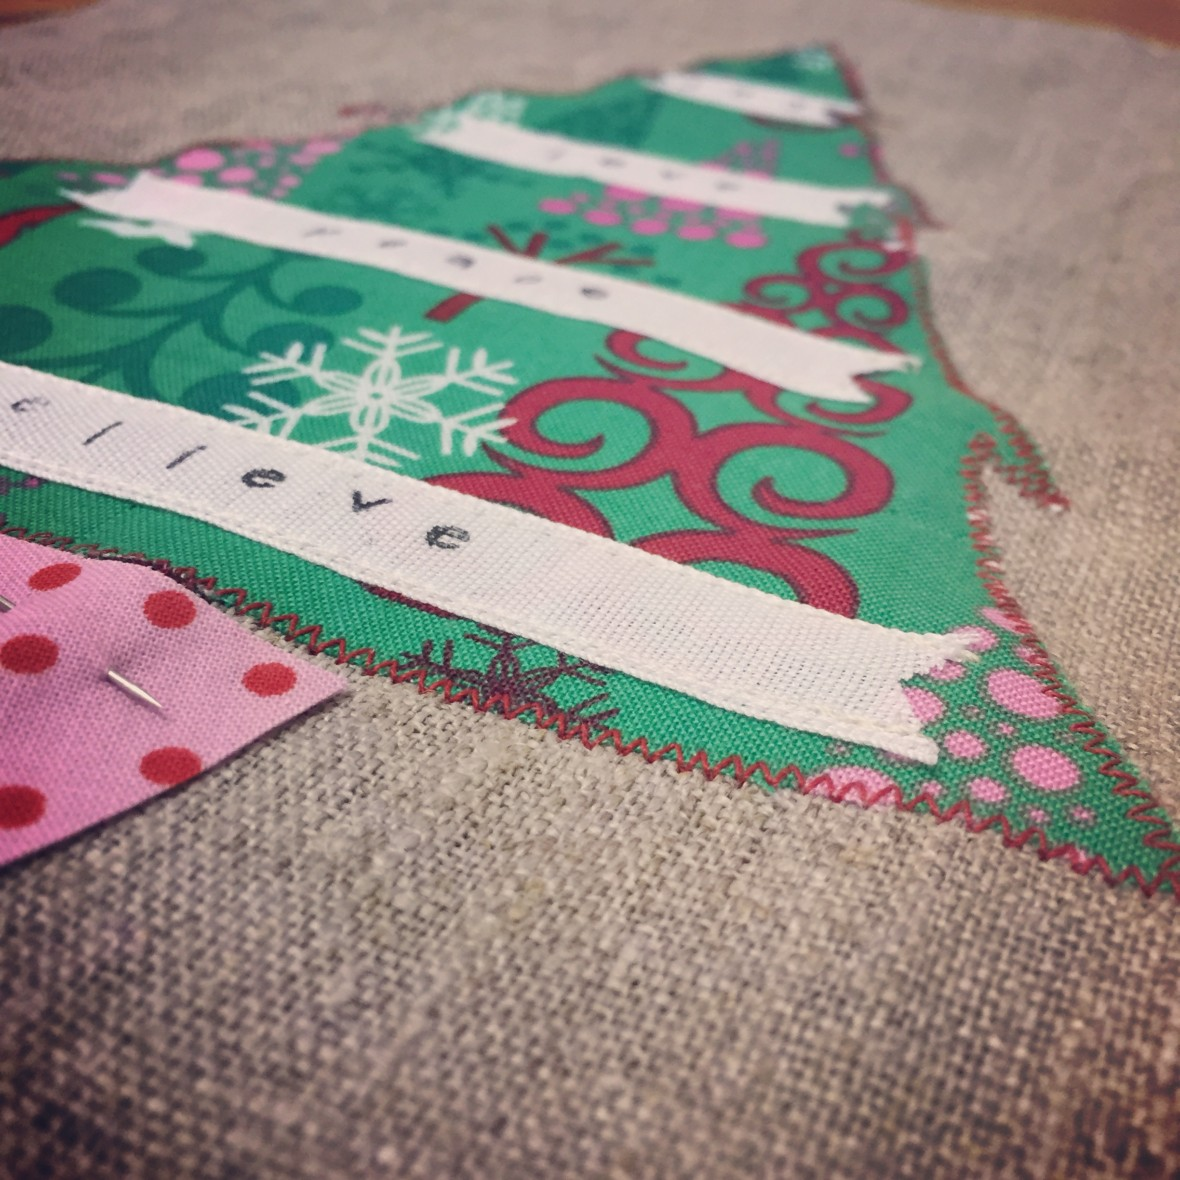 Beginner Sewing Skills - Christmas Style!